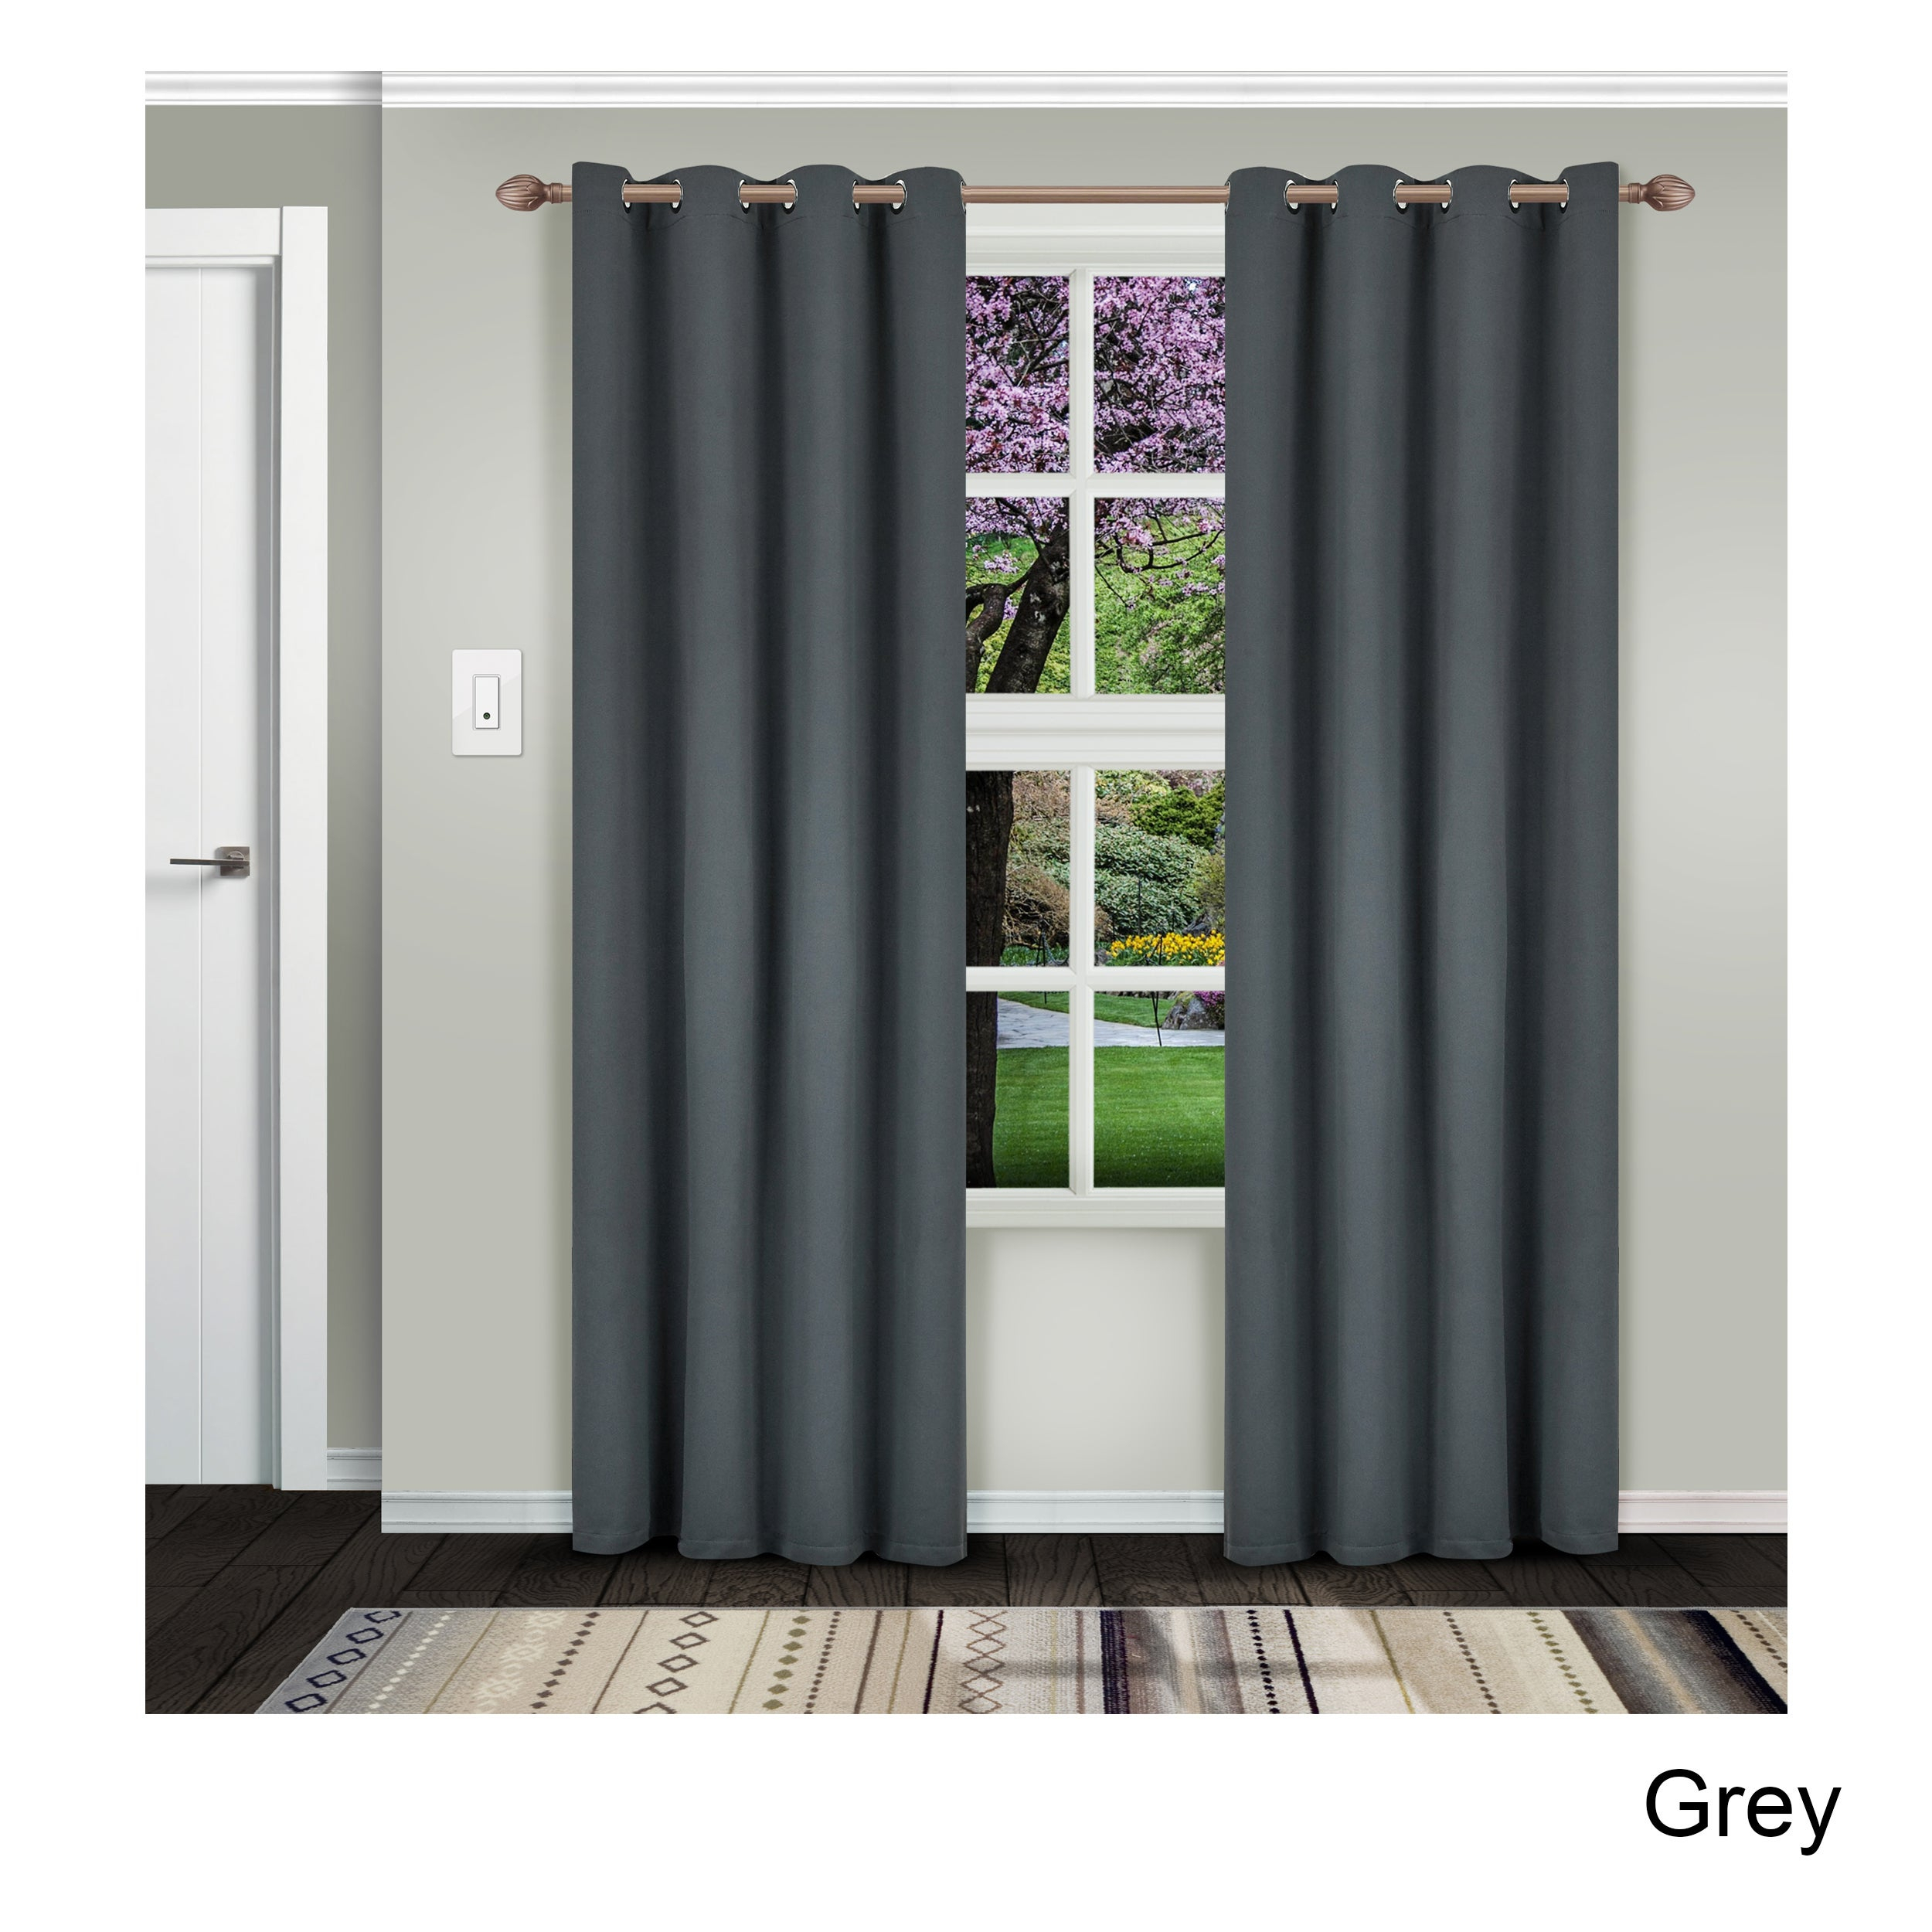 Superior Solid Insulated Thermal Blackout Grommet Curtain Panel Pair Pertaining To Solid Grommet Top Curtain Panel Pairs (View 12 of 30)